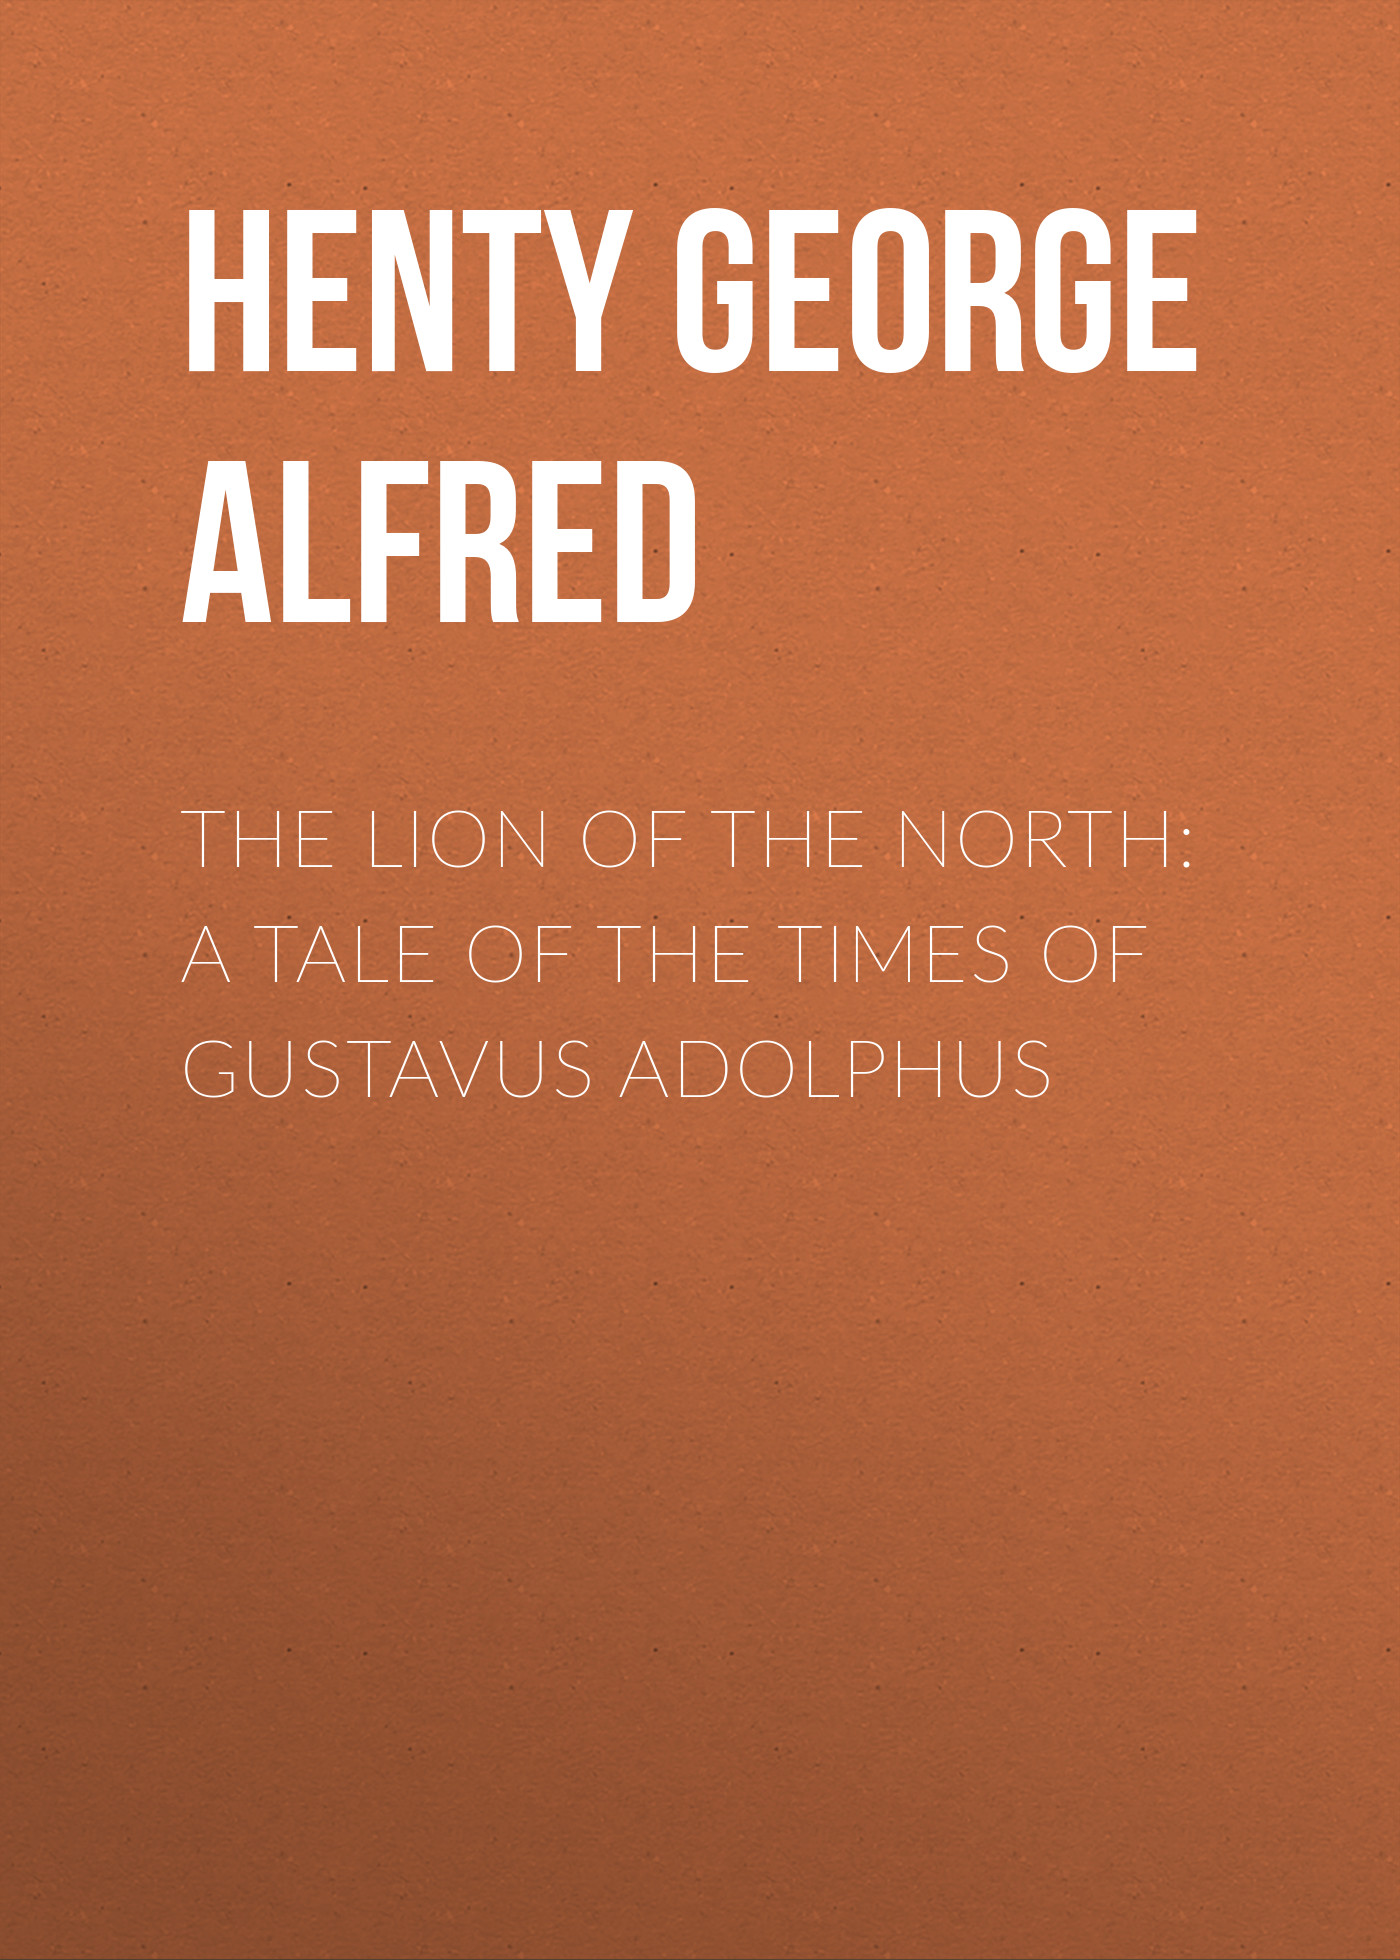 цена на Henty George Alfred The Lion of the North: A Tale of the Times of Gustavus Adolphus